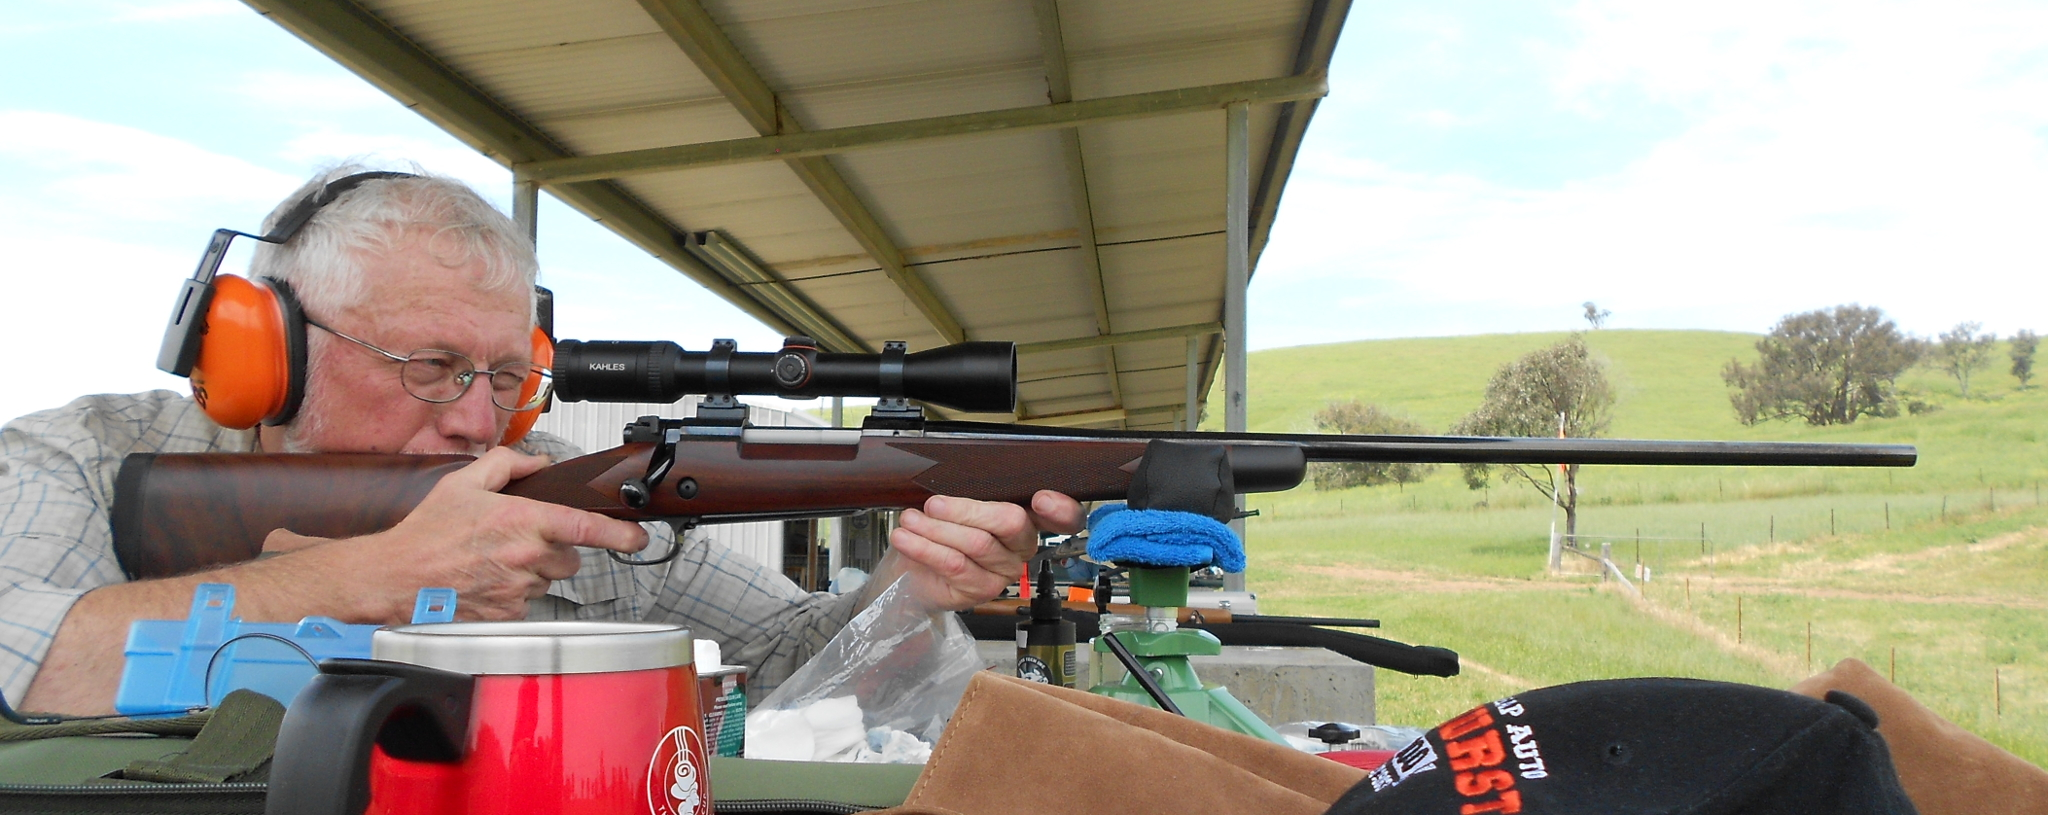 Winchester M70 rifle benchrest sighting in